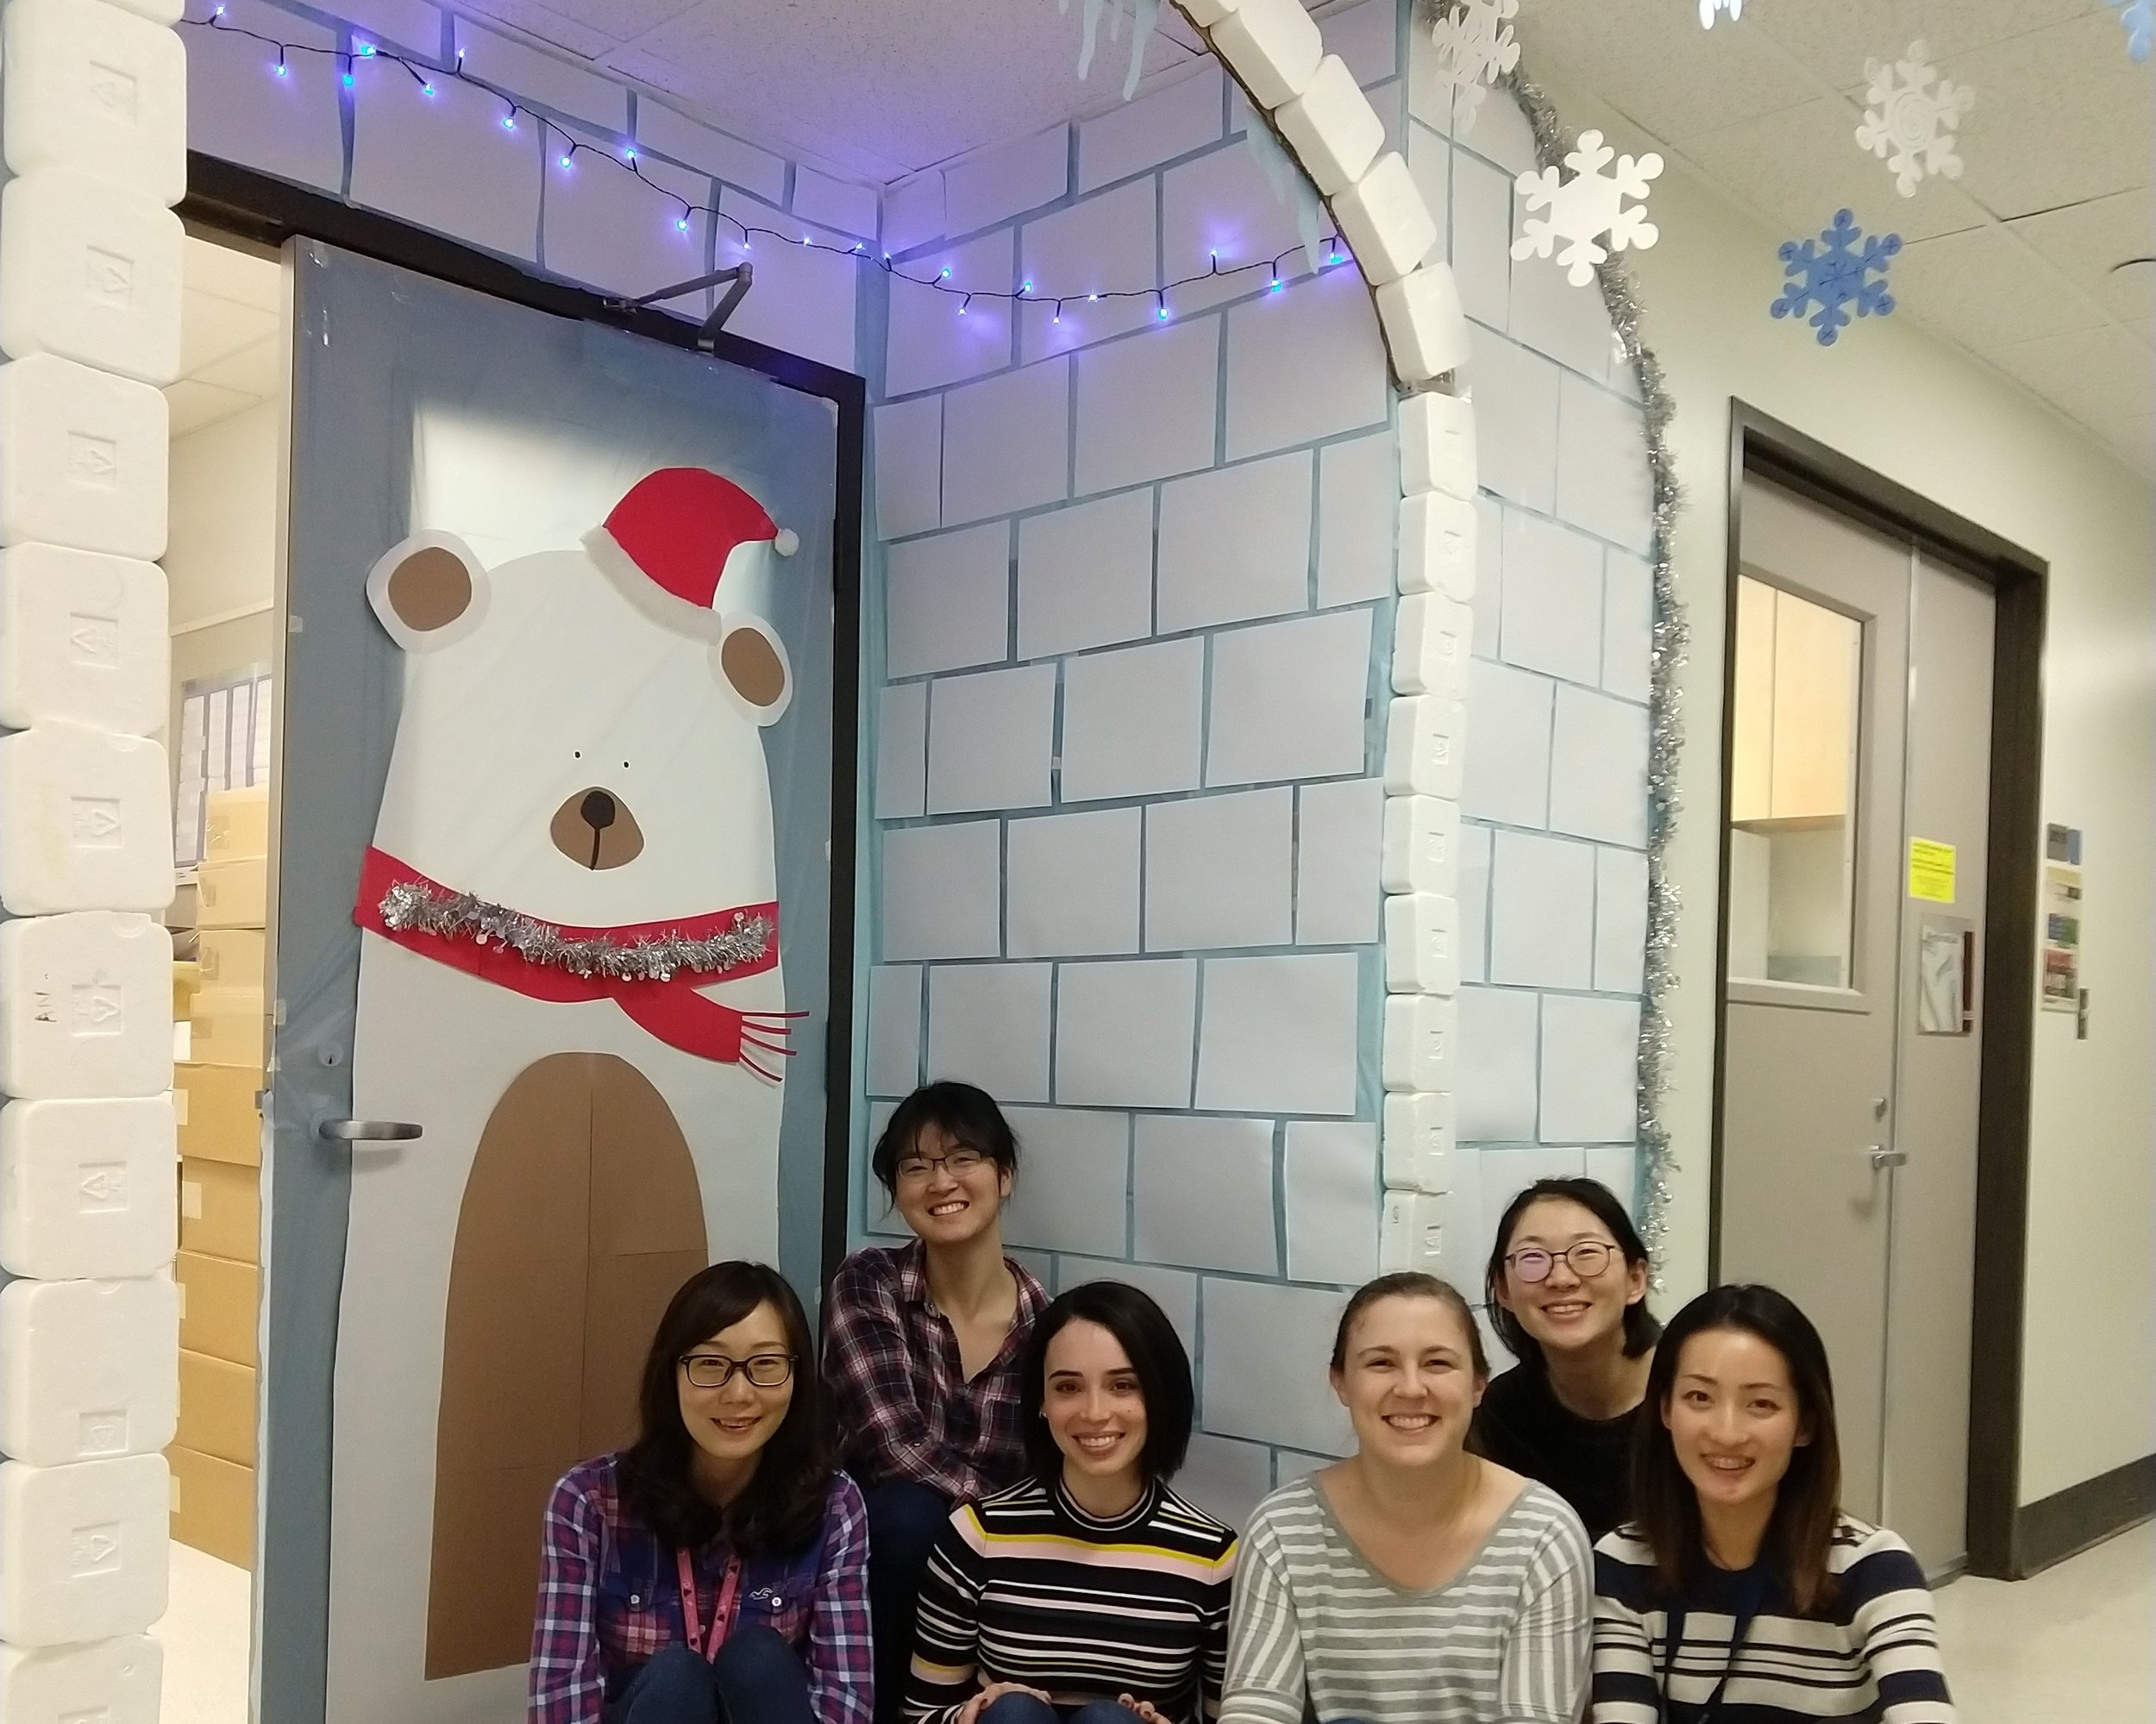 Westbrook lab ladies with the 2018 Holiday Door Decorating Contest entry.